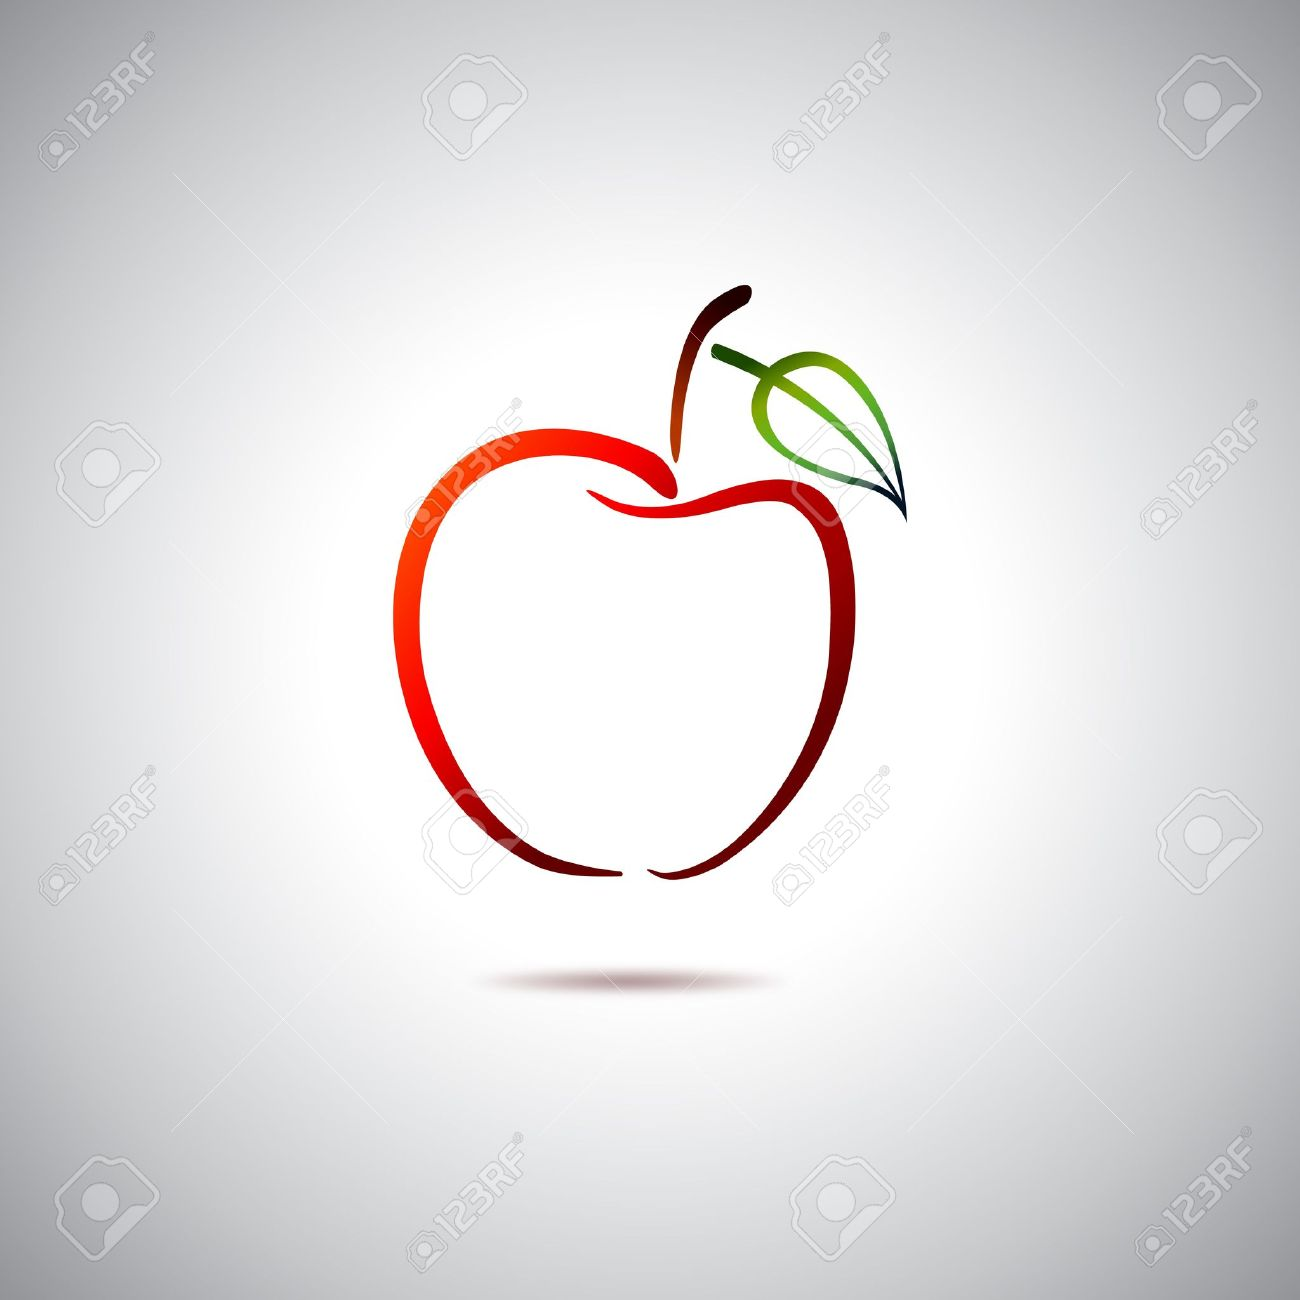 apple logo royalty free cliparts, vectors, and stock illustration